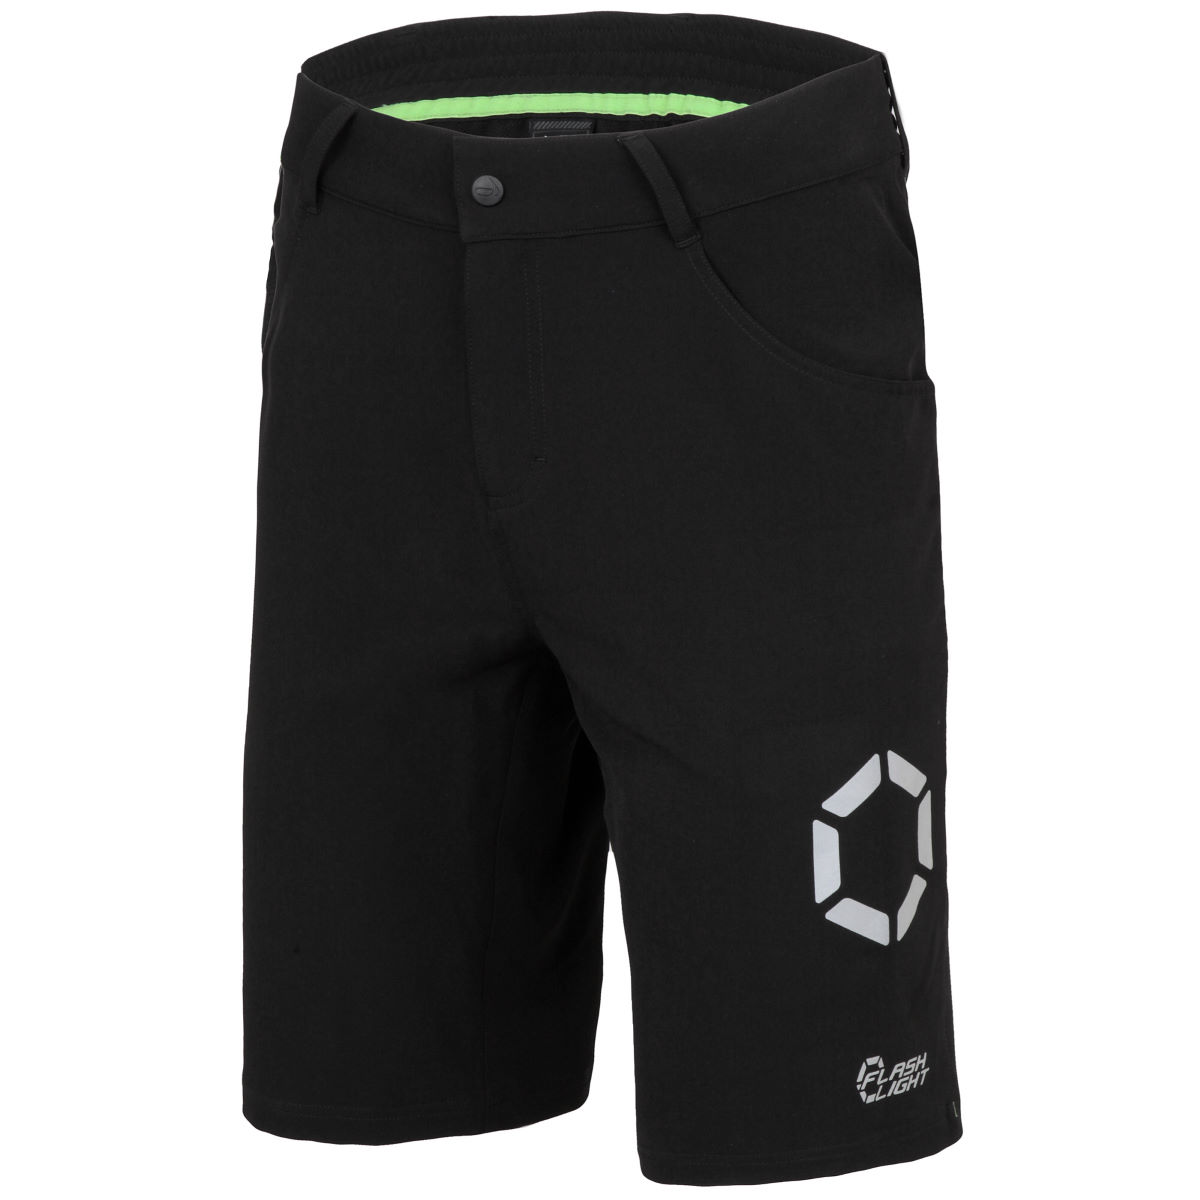 Dhb flashlight baggy shorts baggy cycling shorts black aw16 nu0457